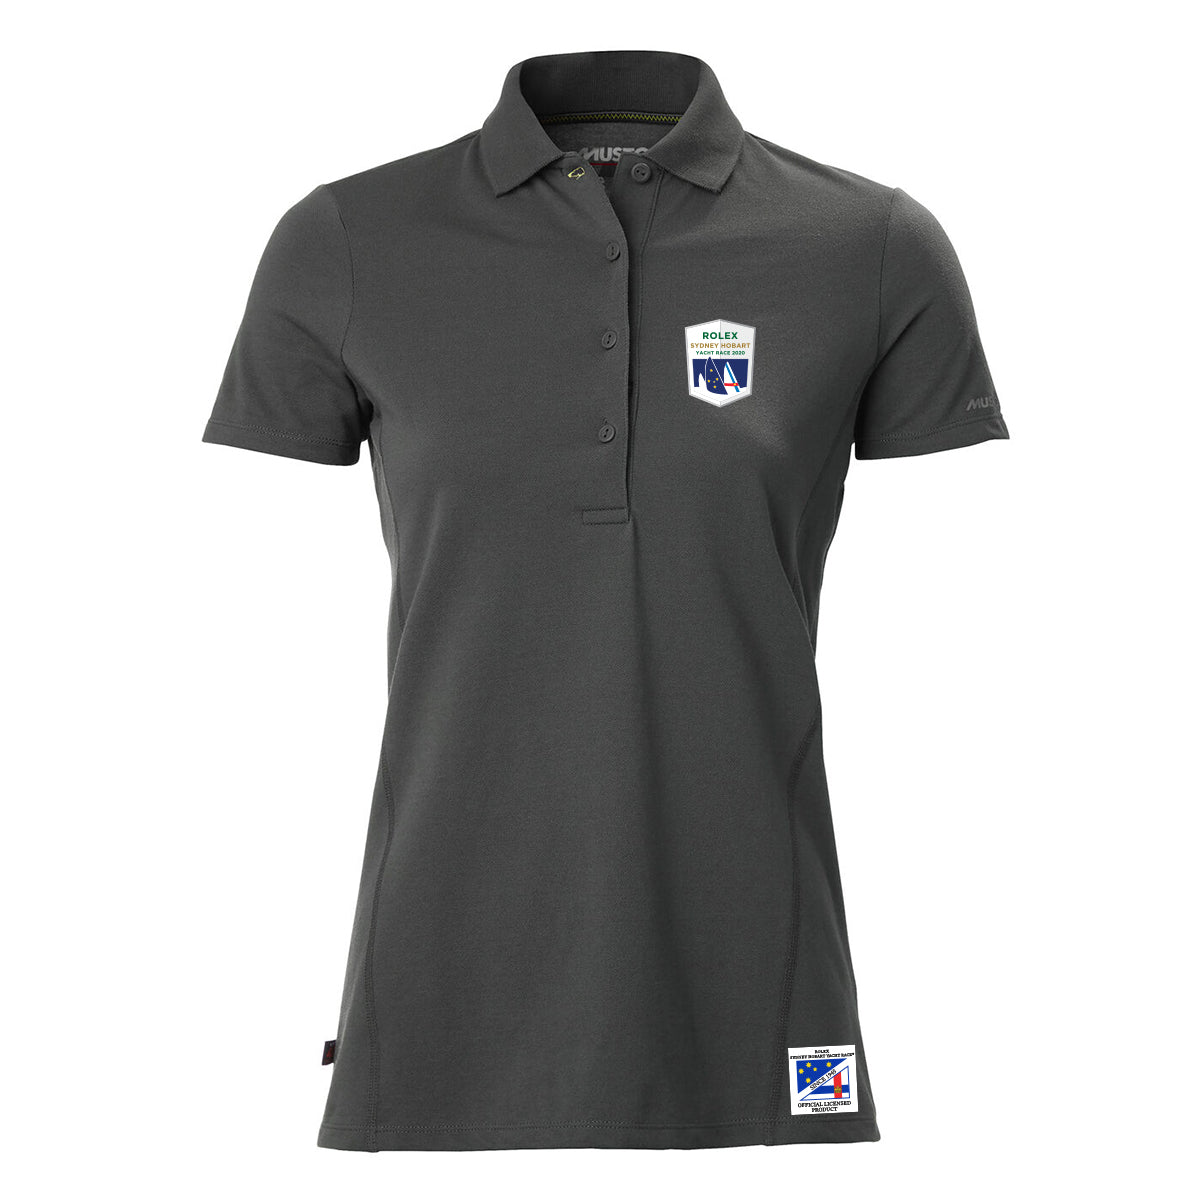 RSHYR20 - Evolution Sunblock Polo (Women's)